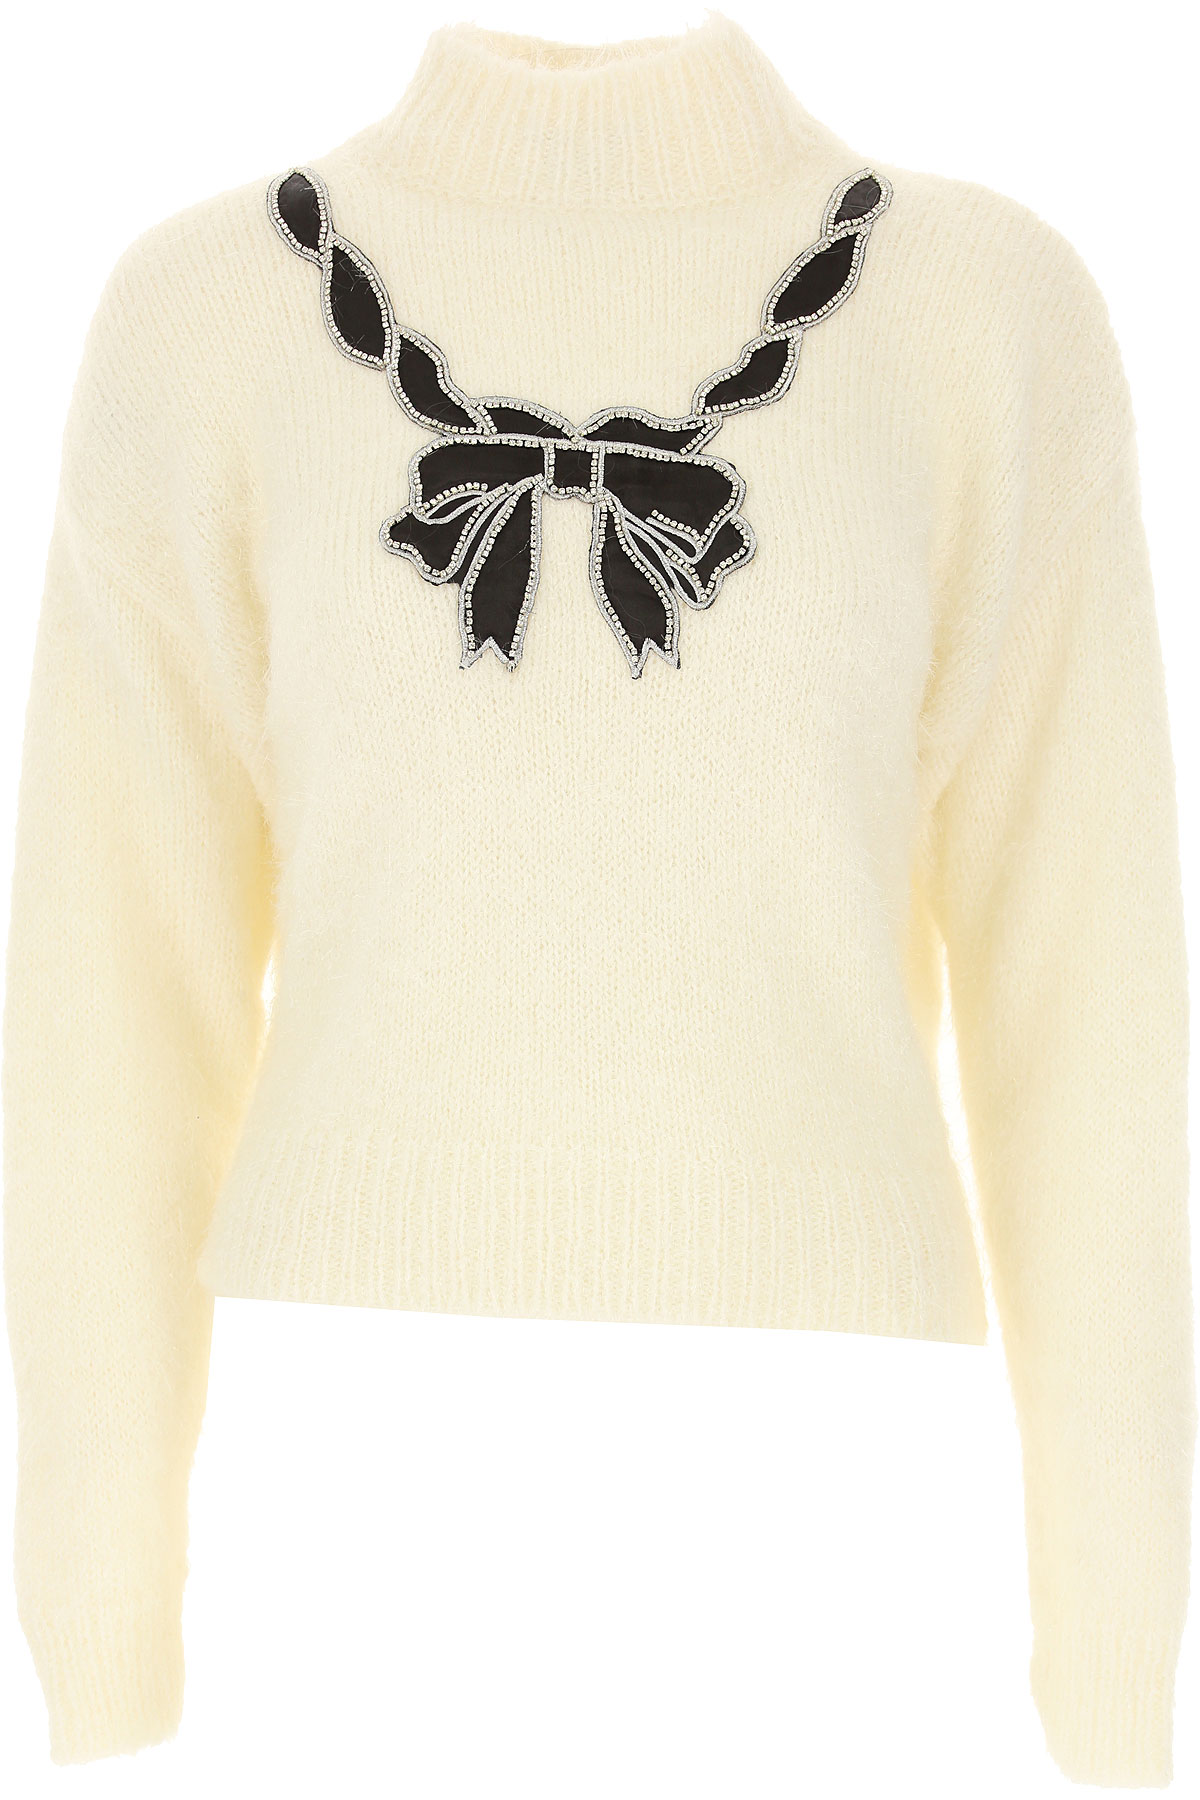 Aniye By Sweater for Women Jumper On Sale, White, Acrylic, 2019, 4 6